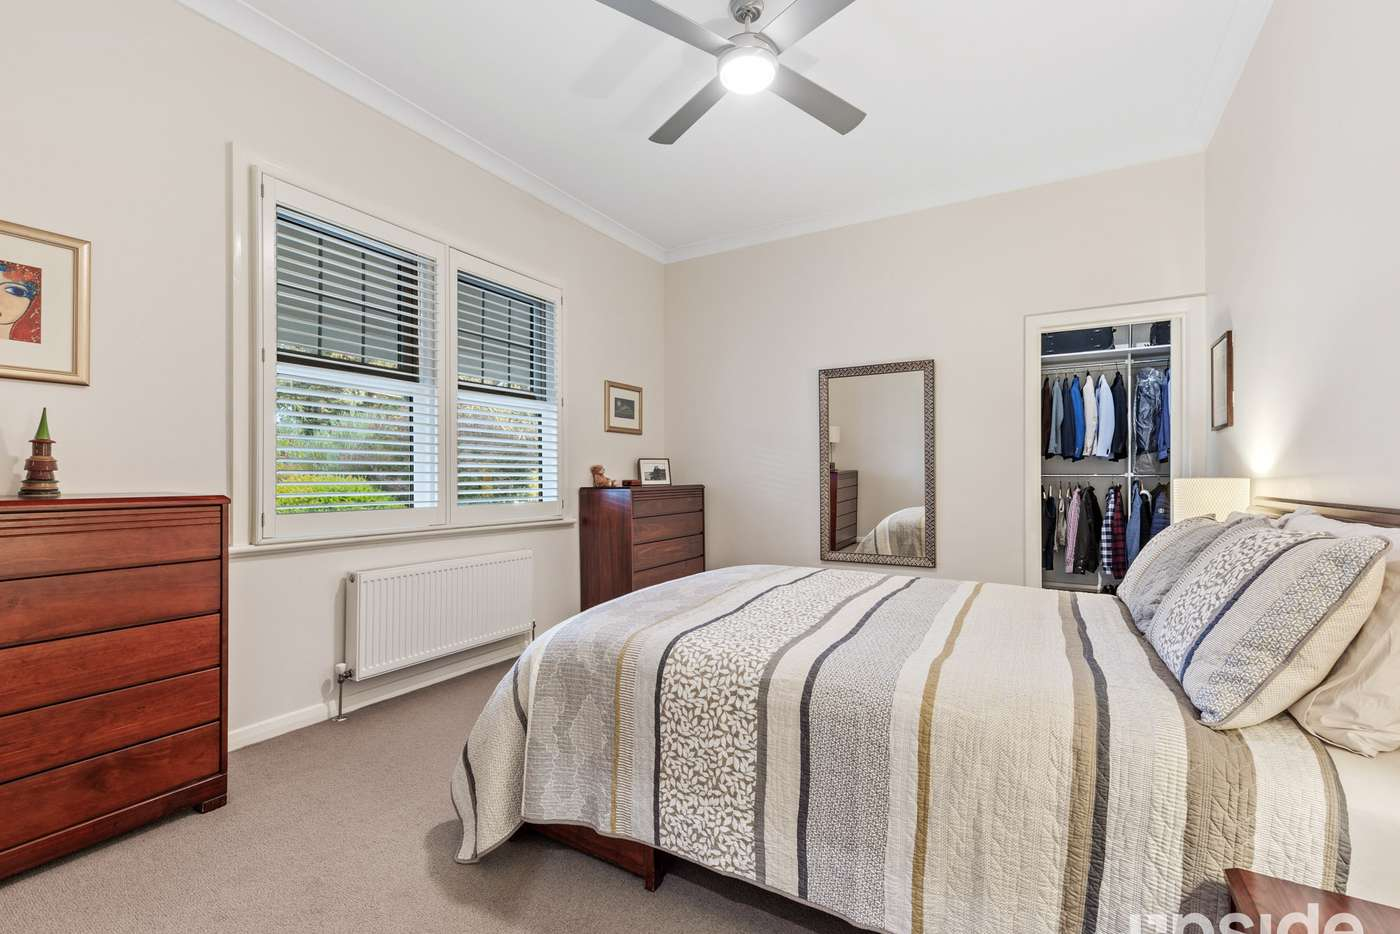 Sixth view of Homely house listing, 20 Ailsa Grove, Ivanhoe VIC 3079